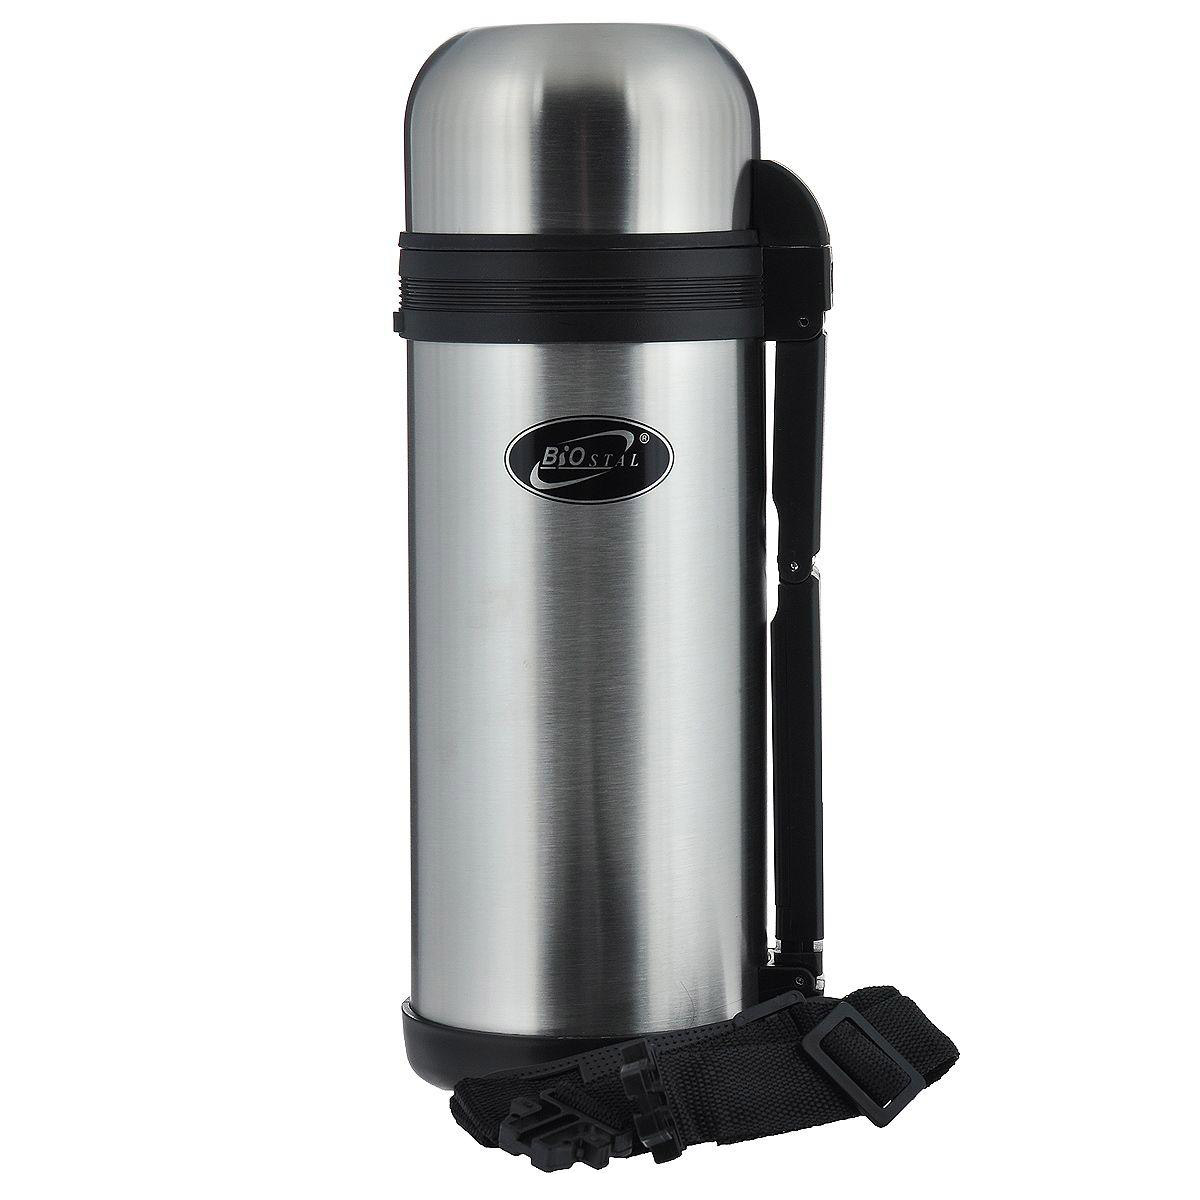 Thermos BIOSTAL NG-1500-1 (Volume 1.5 liter, stainless steel, time of heat preservation 19 hours, foldable handle) new safurance 200w 12v loud speaker car horn siren warning alarm stainless steel home security safety